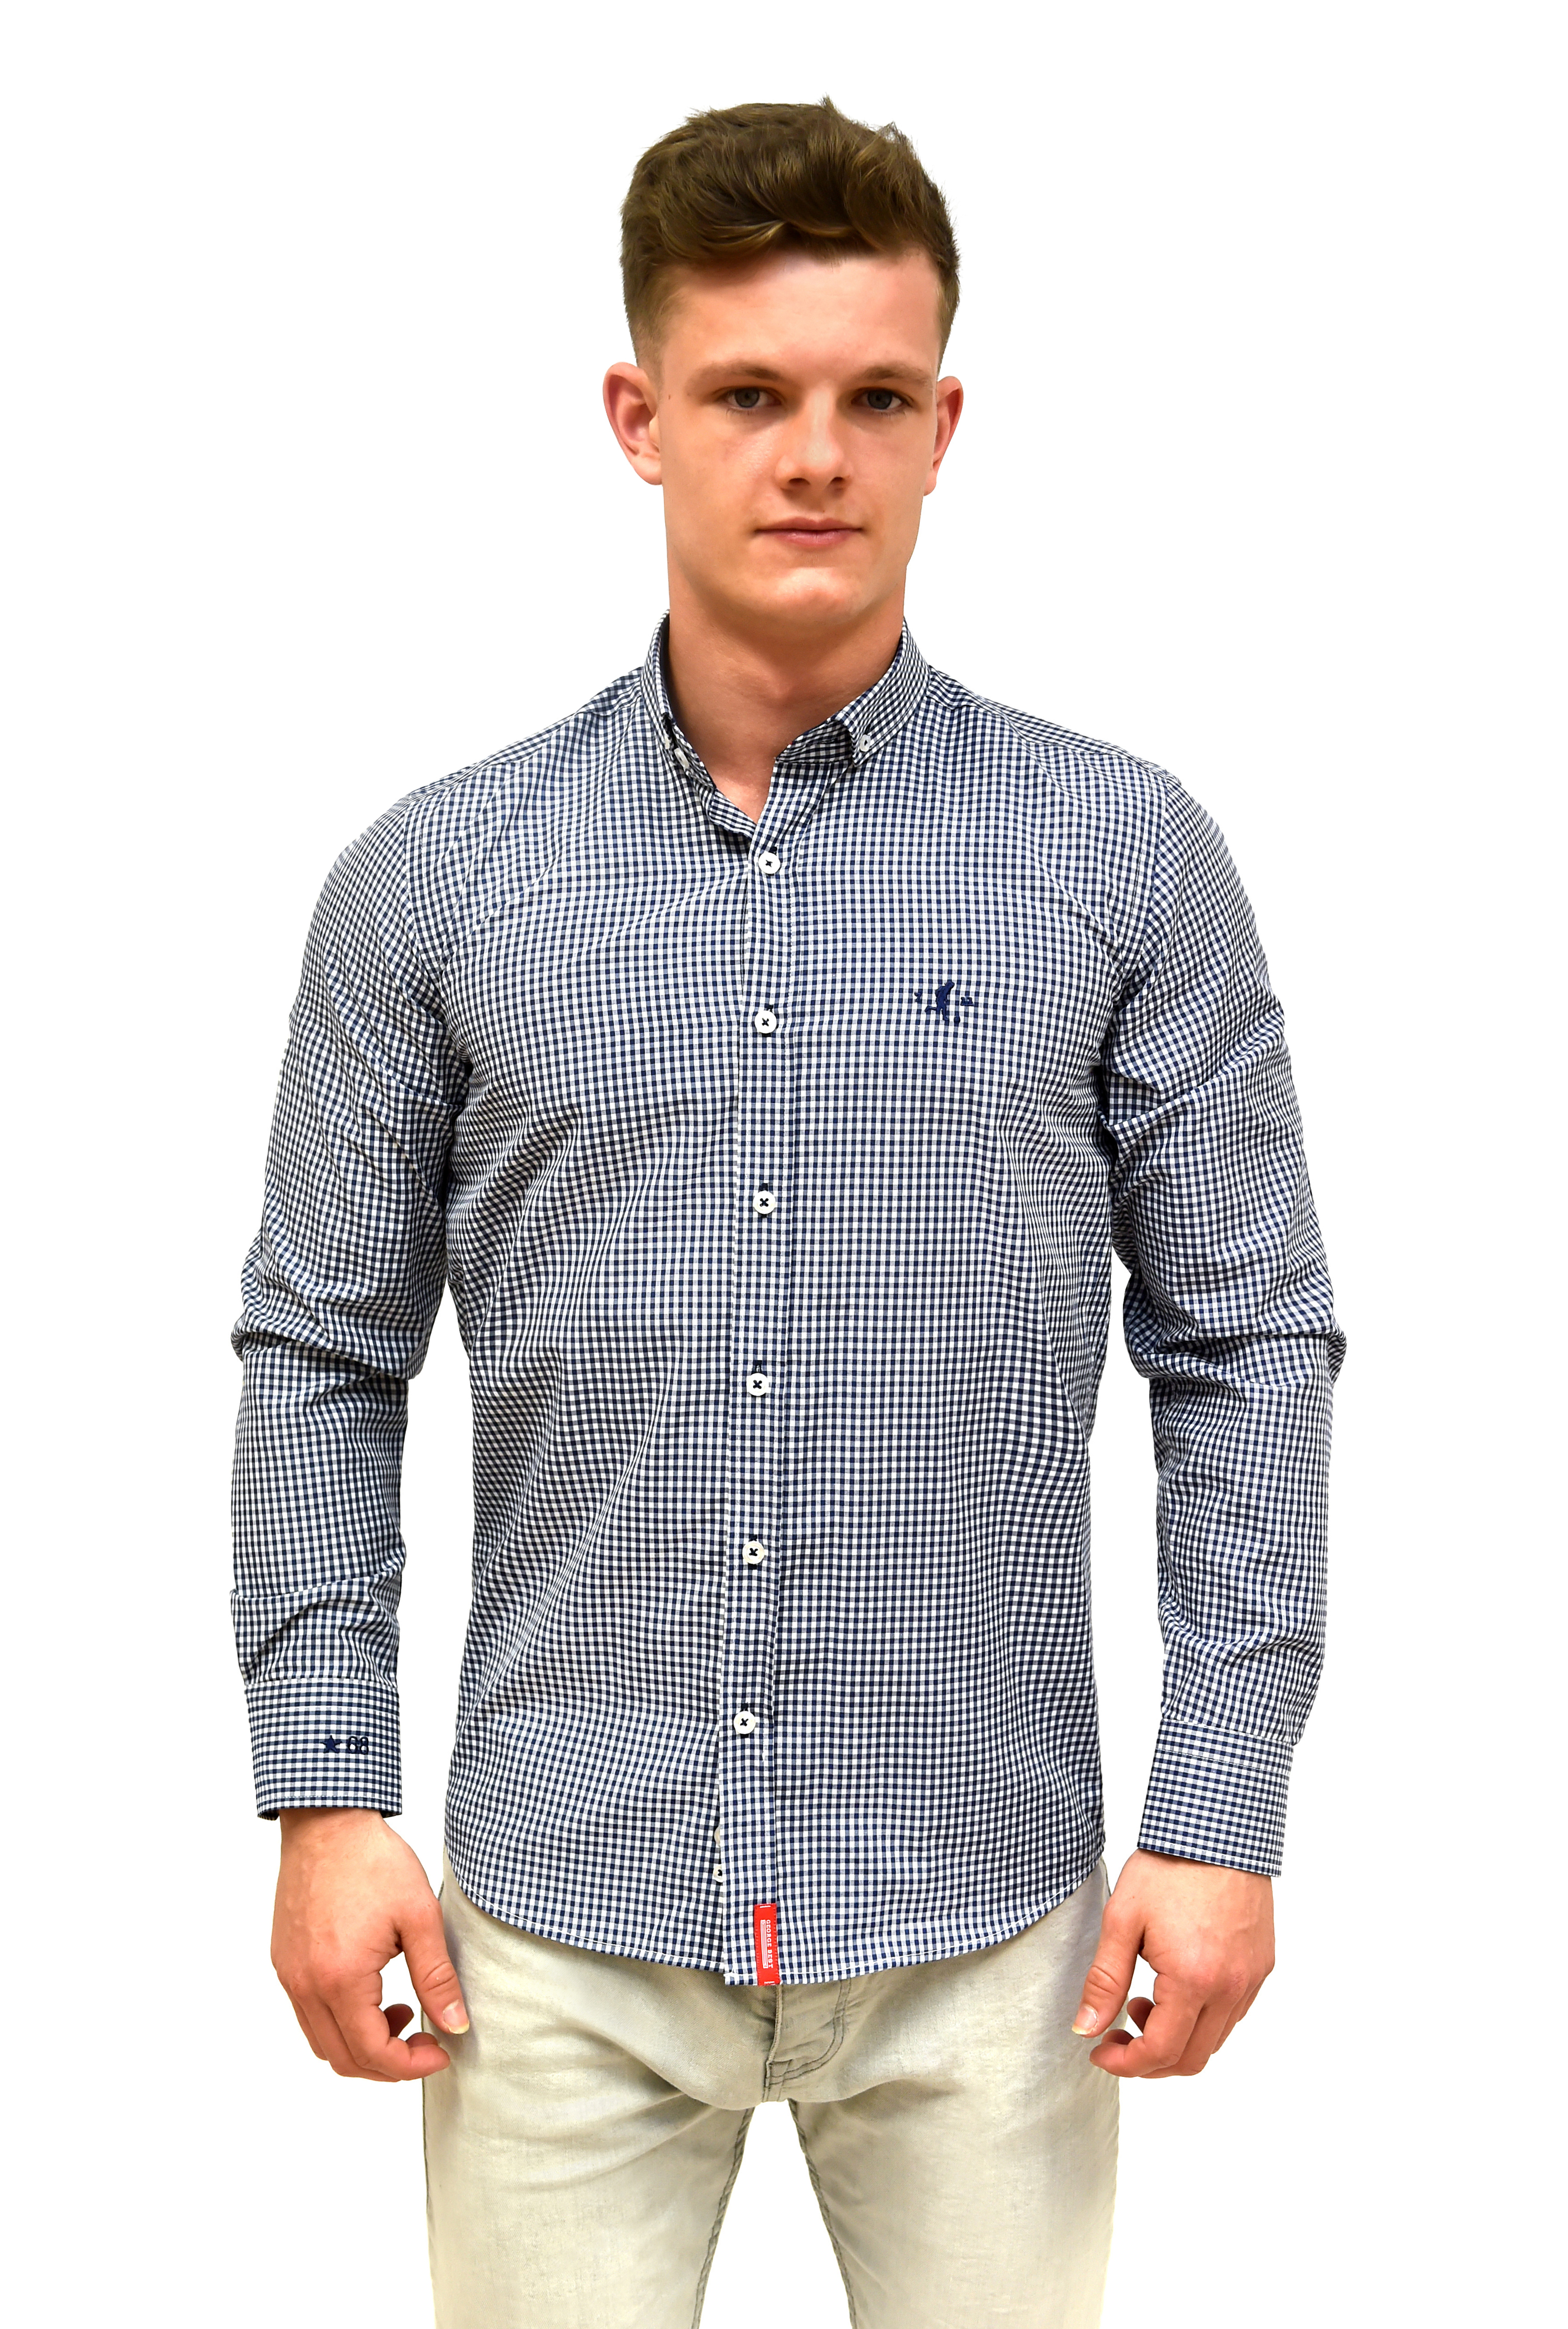 best tailored fit navy gingham check shirt with button